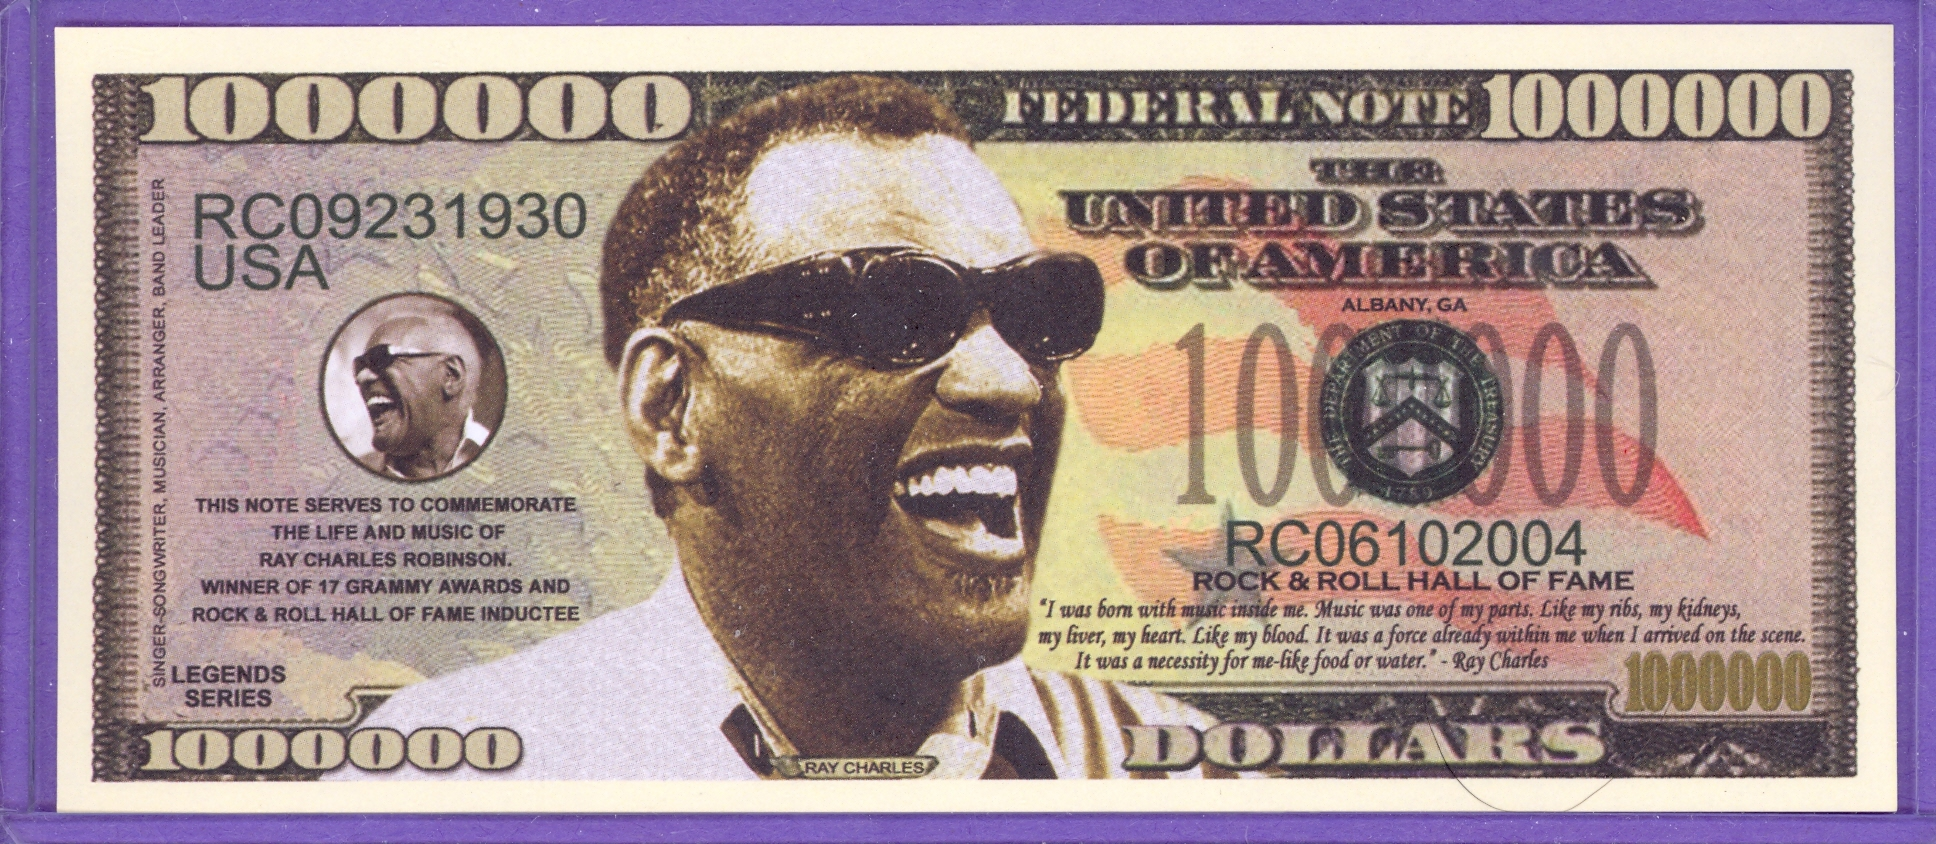 Ray Charles $1,000,000 Novelty Note